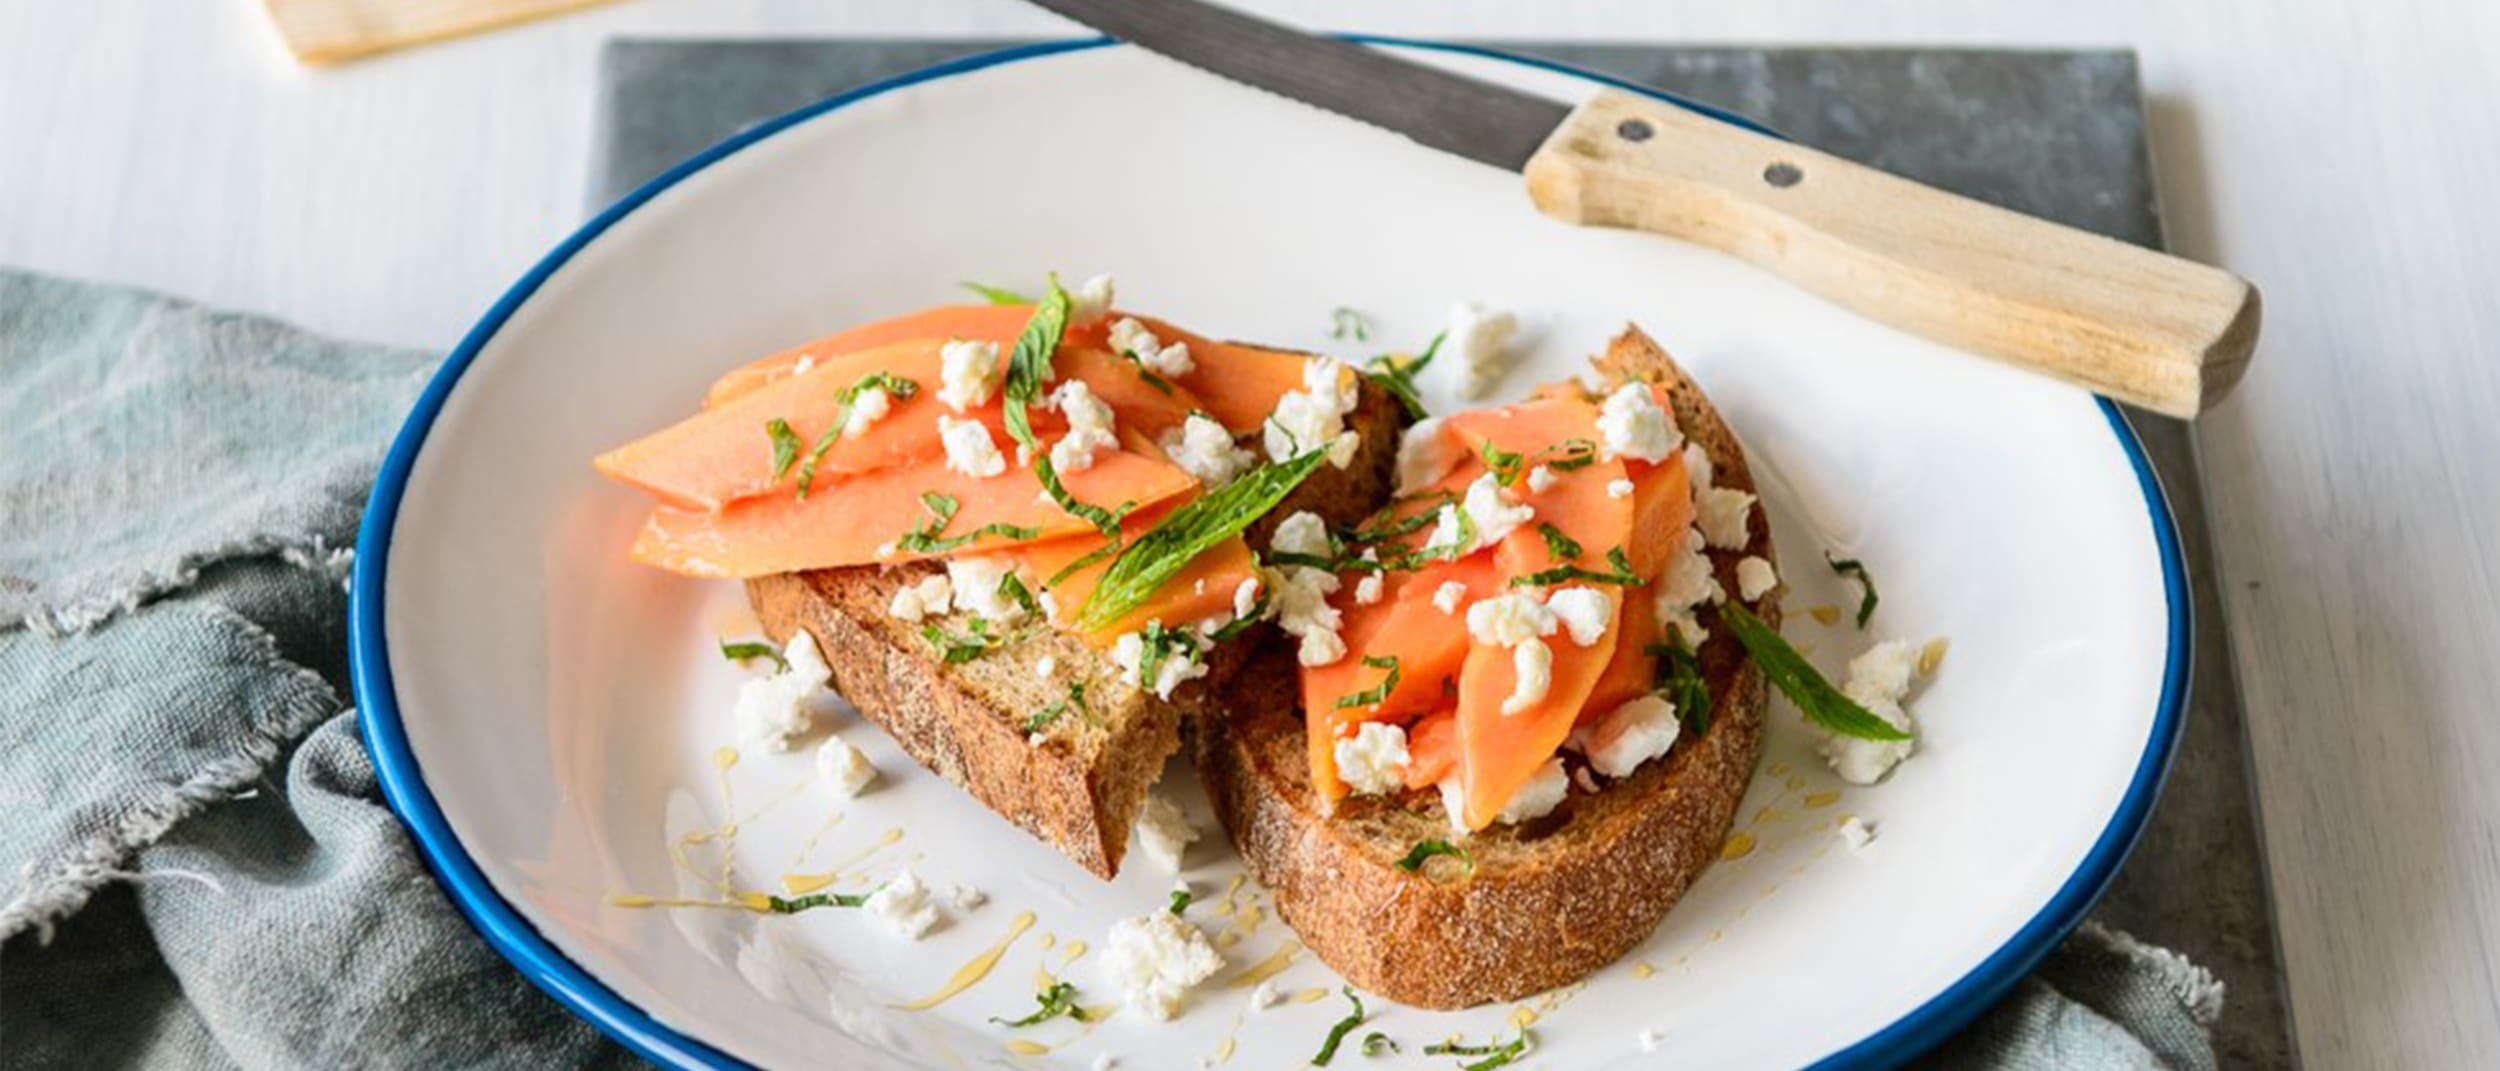 Recipe: Papaya, Goat Cheese and Honey Toast